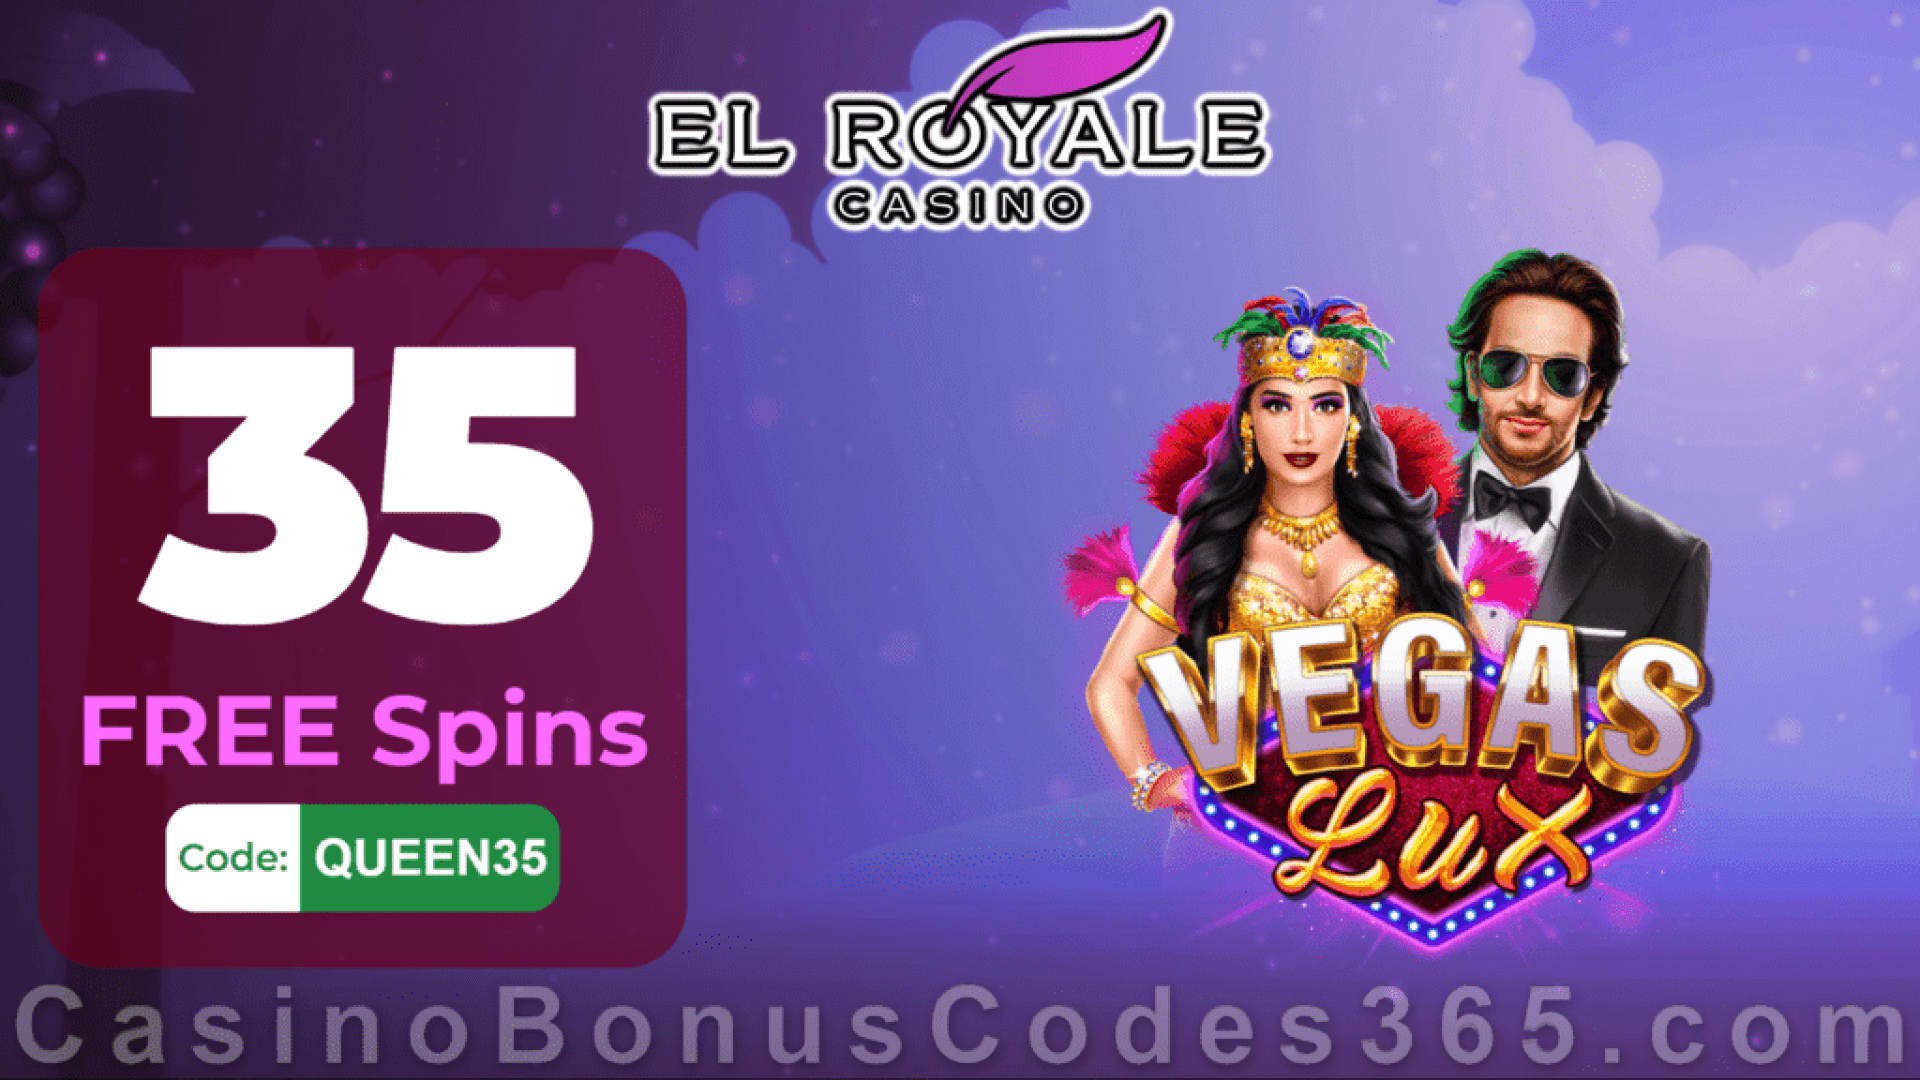 El Royale Casino Exclusive 35 FREE Spins on RTG Vegas Lux New Players No Deposit Promotion